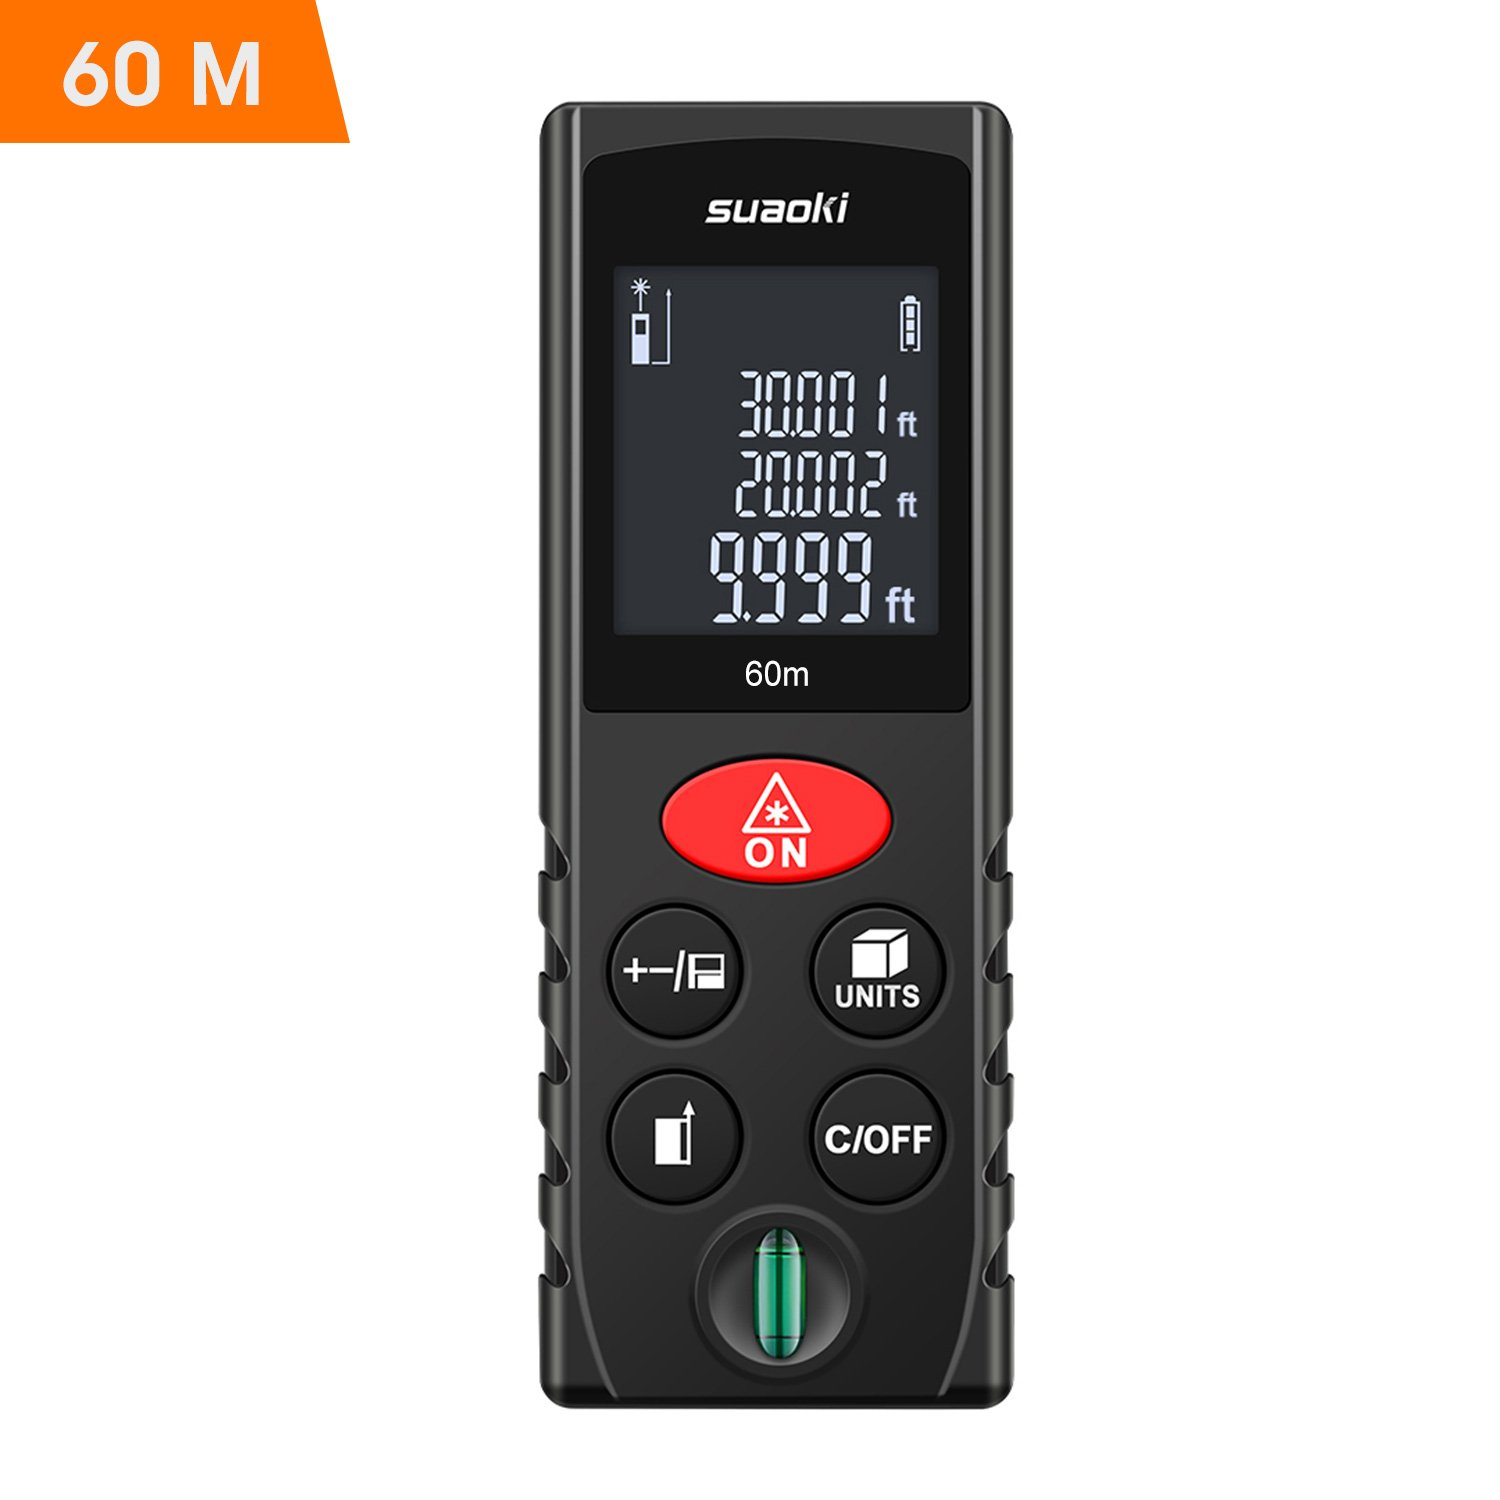 Suaoki Laser Measure 197Ft with Multi Function Laser Measuring Device with Bubble Level, Pythagorean Mode, Area and Volume Calculation - Battery Included